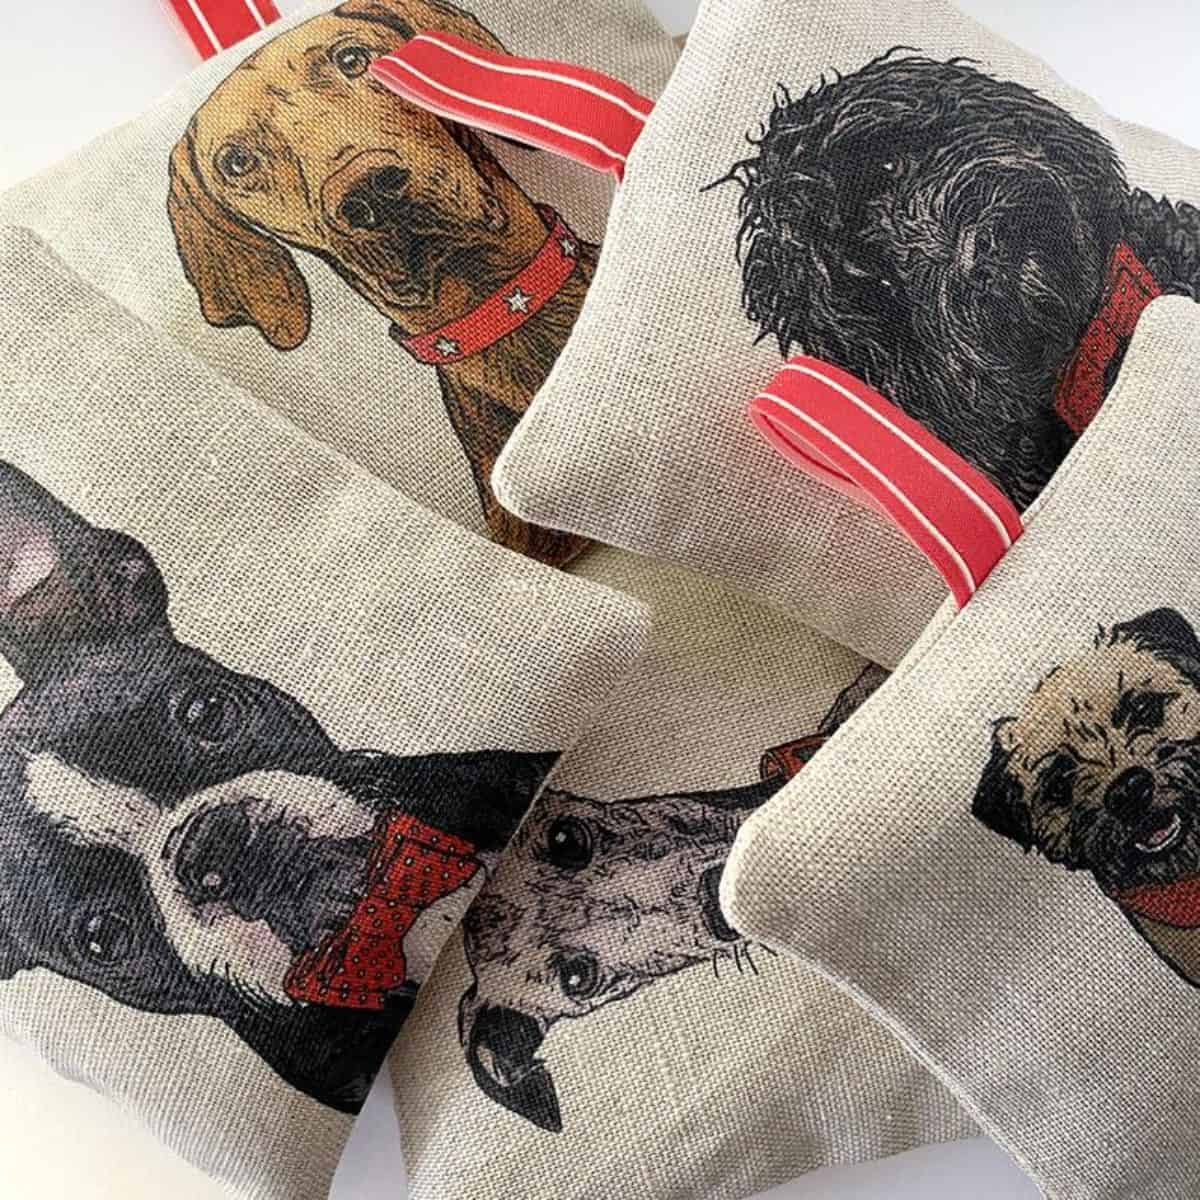 bag scented sachets